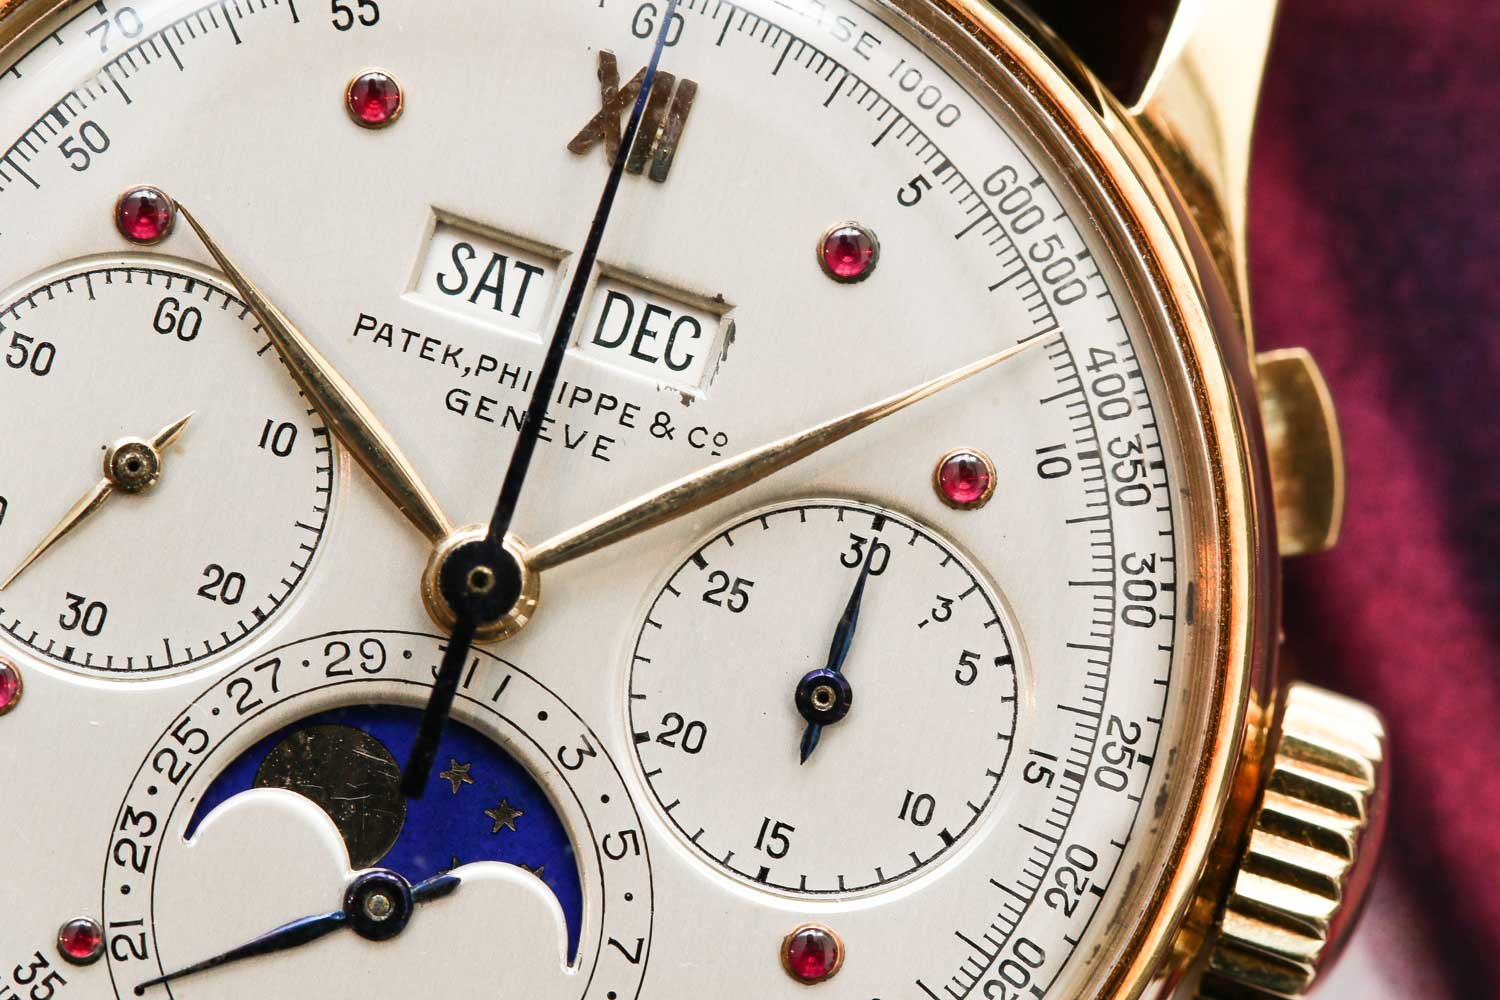 Mr. Stern's special dial with cabuchon ruby hour markers and a 3-minute telephone call timer scale (©Revolution)